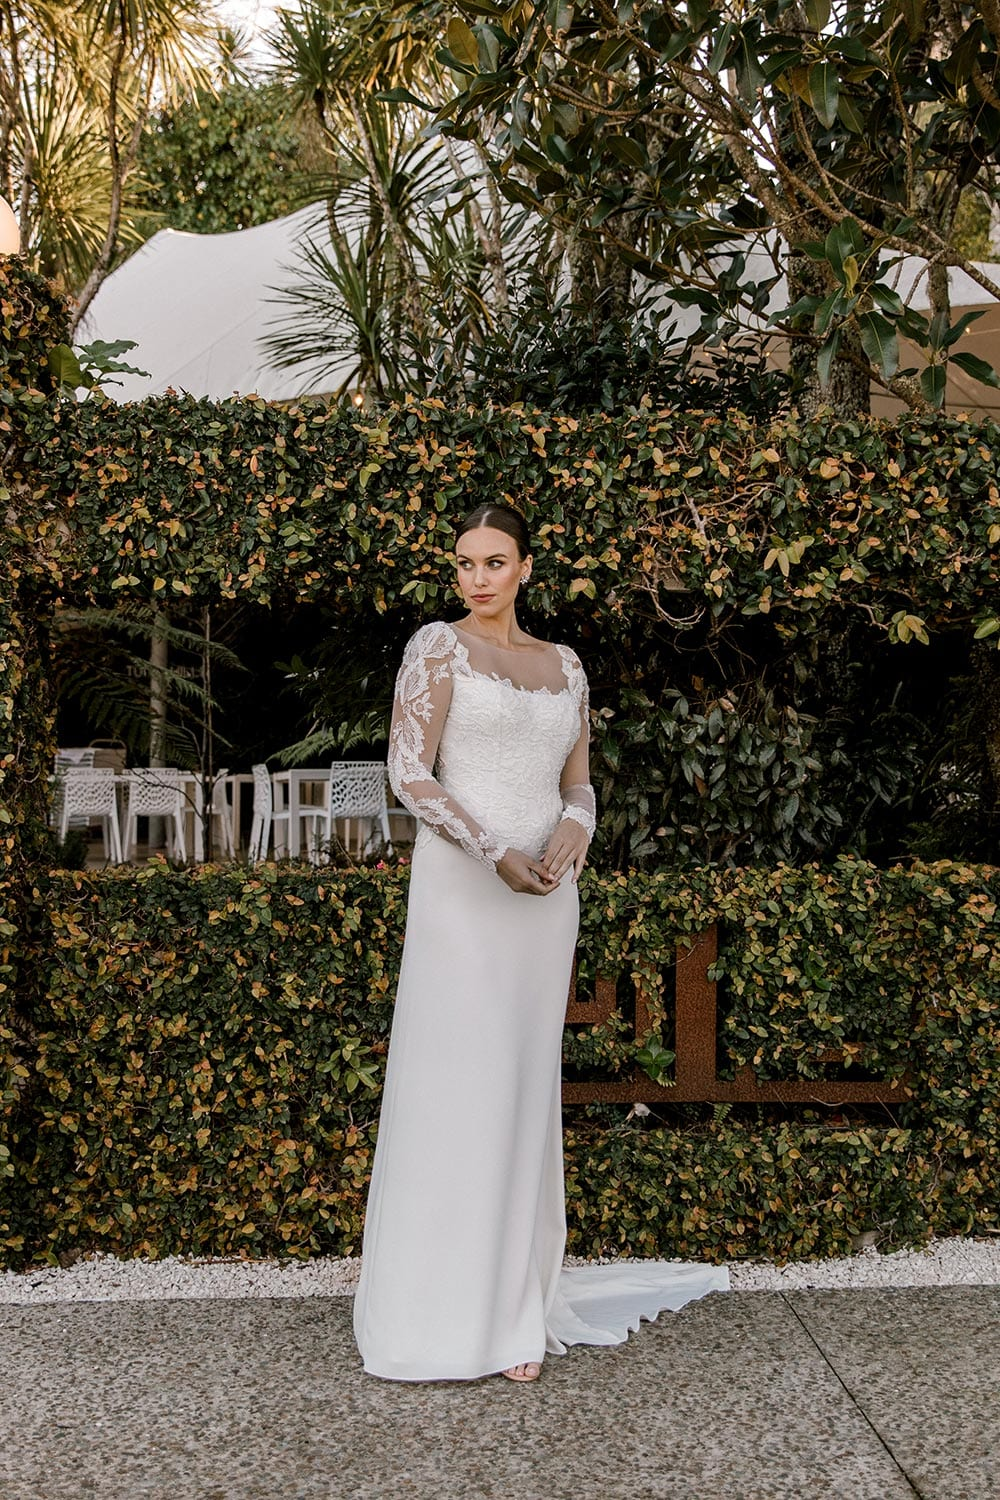 Ariel Wedding Dress from Vinka Design. Wedding dress with illusion scoop neckline & sheer low back with beaded lace. Long, fitted lace sleeves with pearl buttons & A-line skirt that falls into a train. full length dress, photographed at Tui Hills by Emmaline Photography.